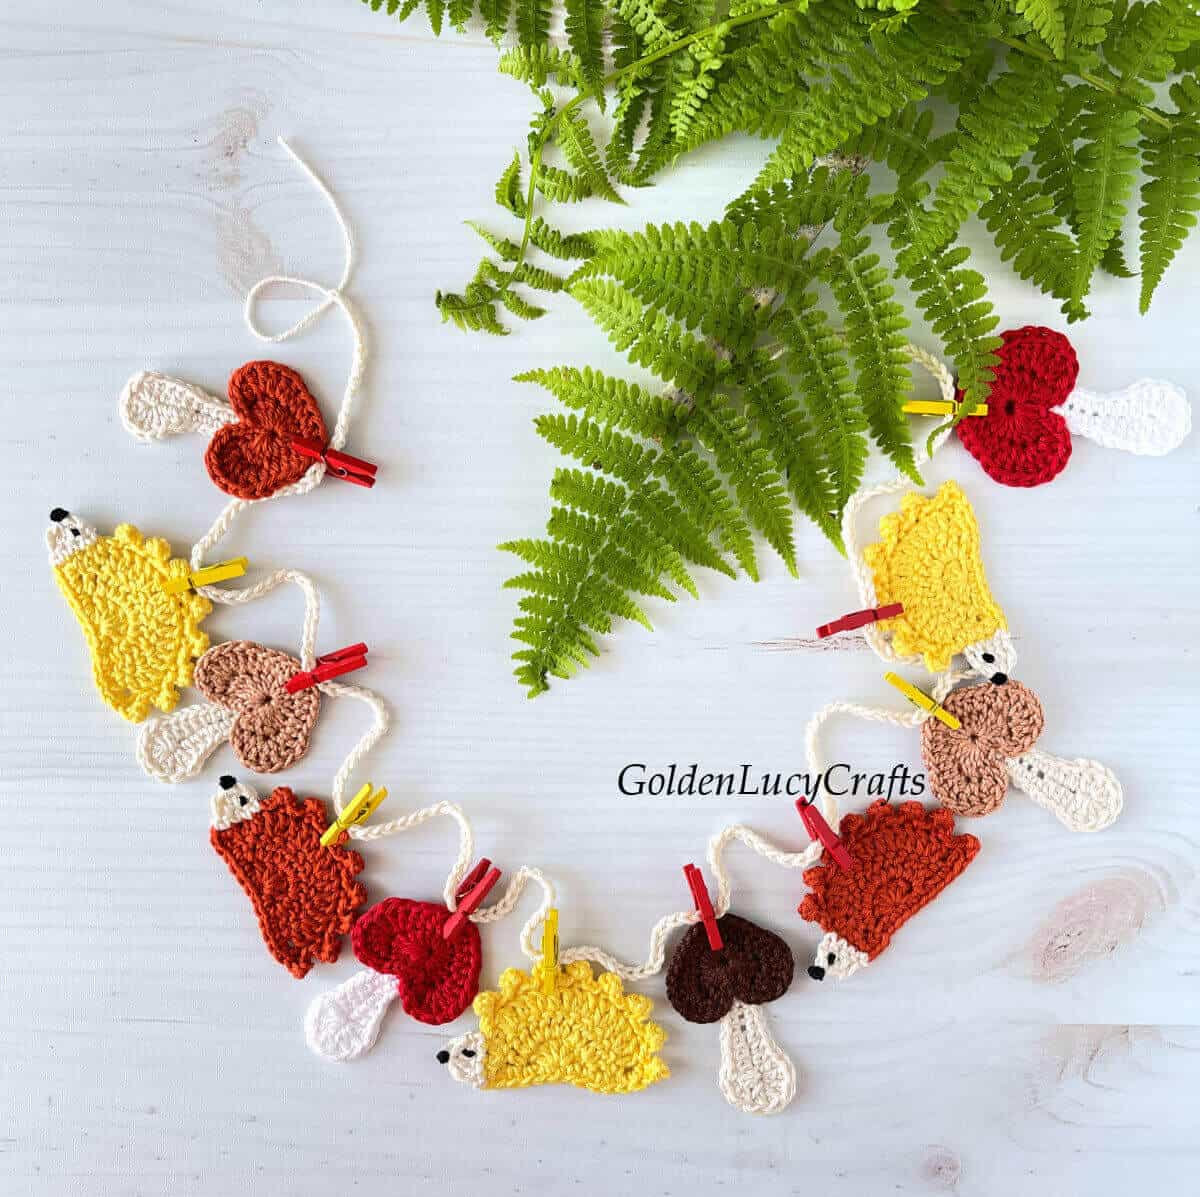 Crocheted mushrooms and hedgehogs garland, fern leaves in the background.